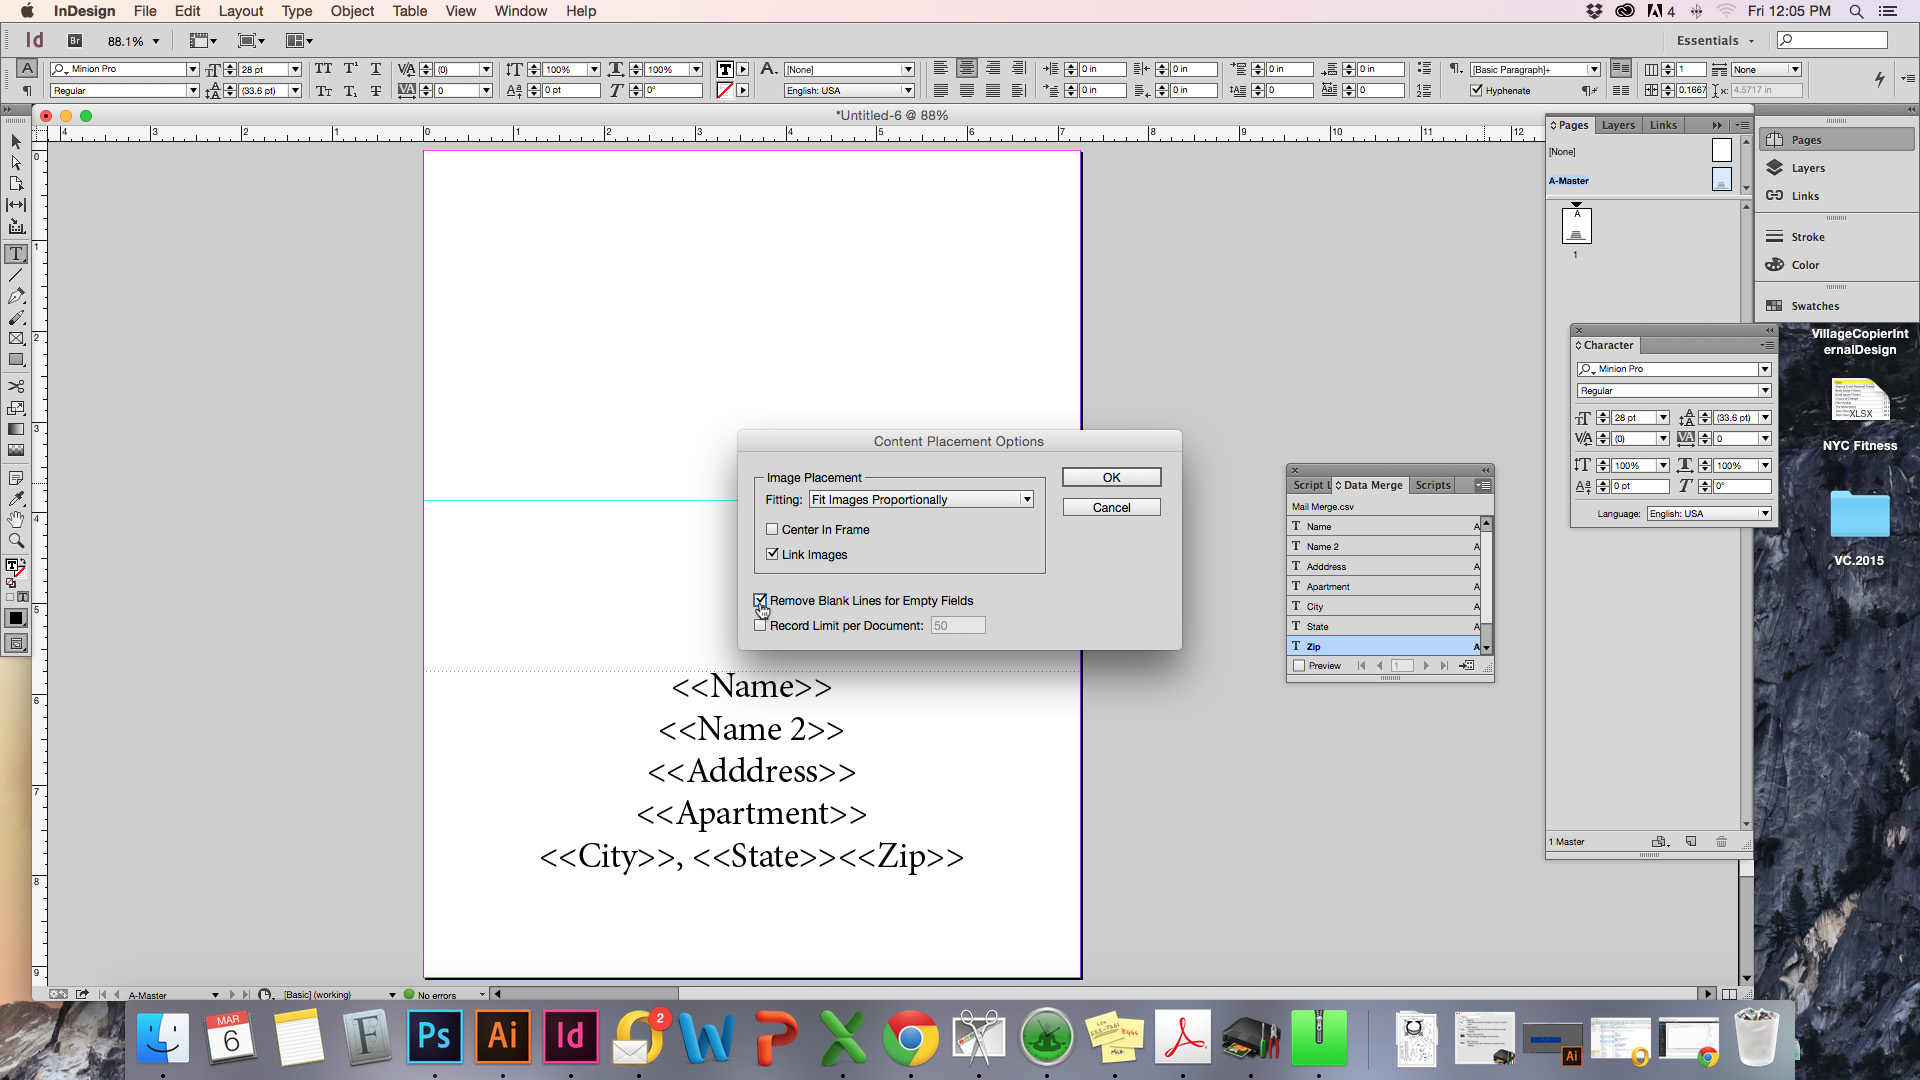 Printing Tips & Tricks: Setting Up a Mail Merge | Village Copier